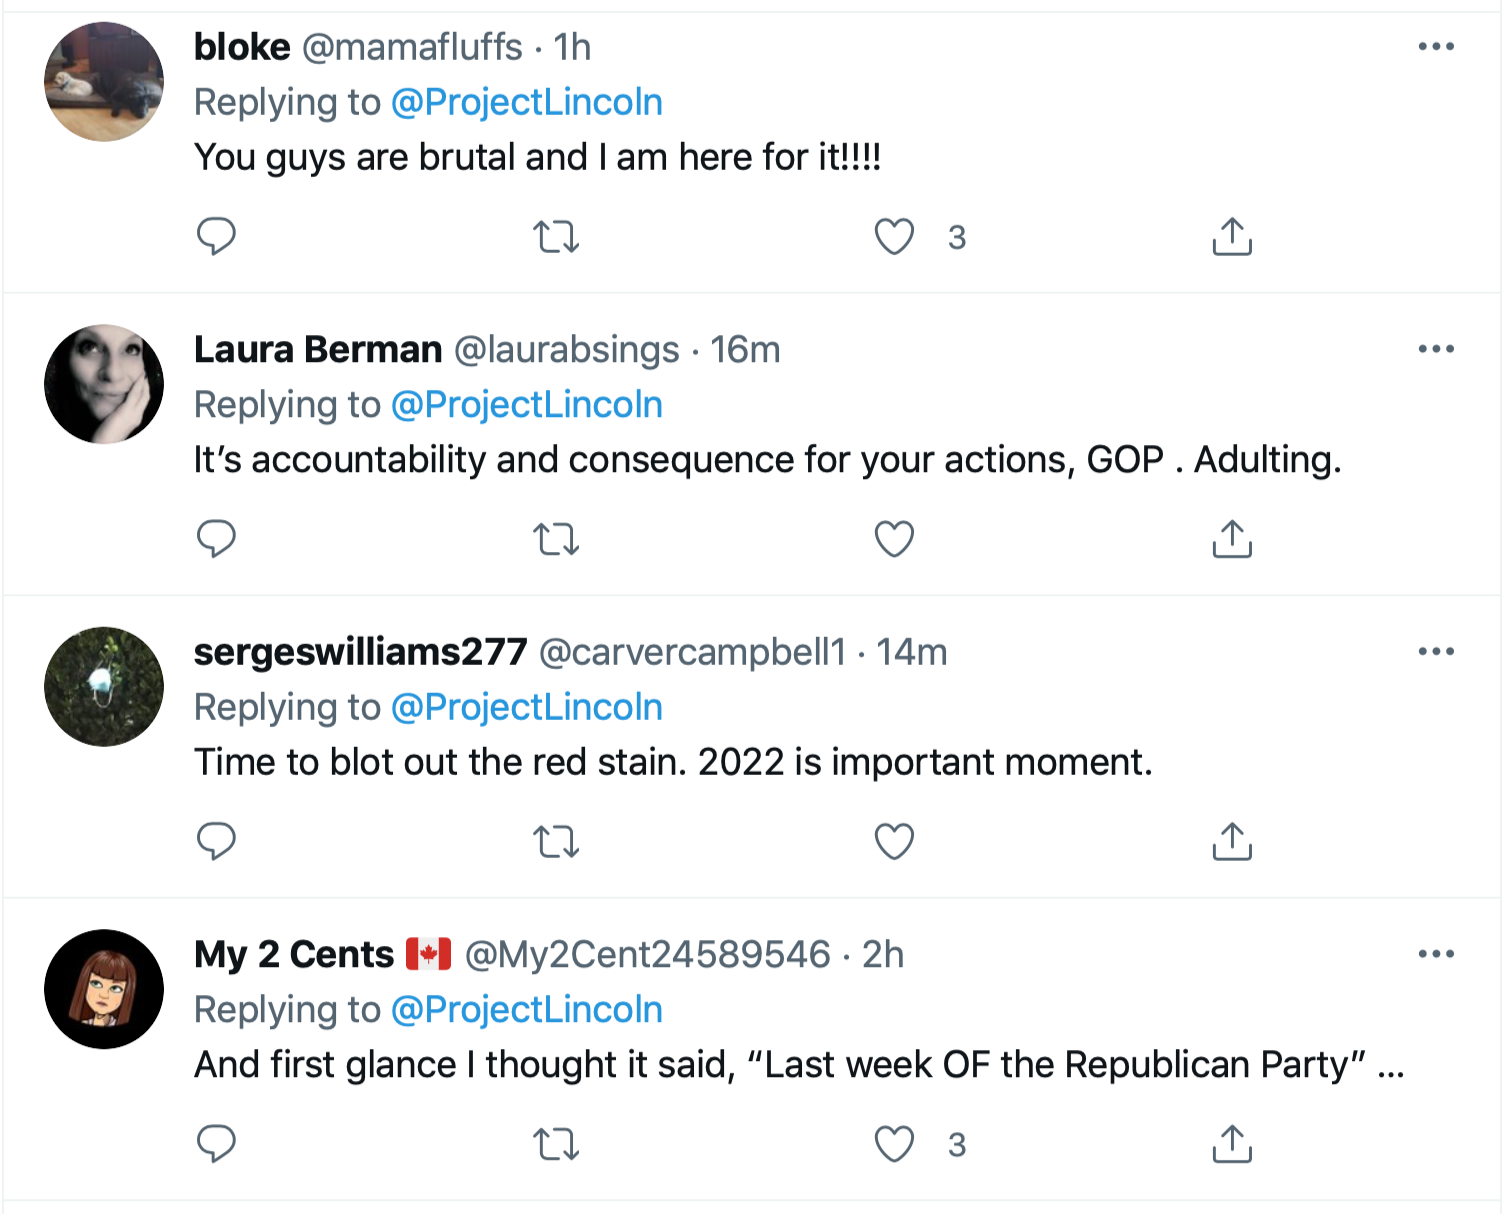 Screen-Shot-2021-06-29-at-11.11.32-AM The Lincoln Project' Expose The GOP Traitors In New Video Release Conspiracy Theory Corruption Donald Trump Featured Politics Social Media Top Stories Twitter Videos